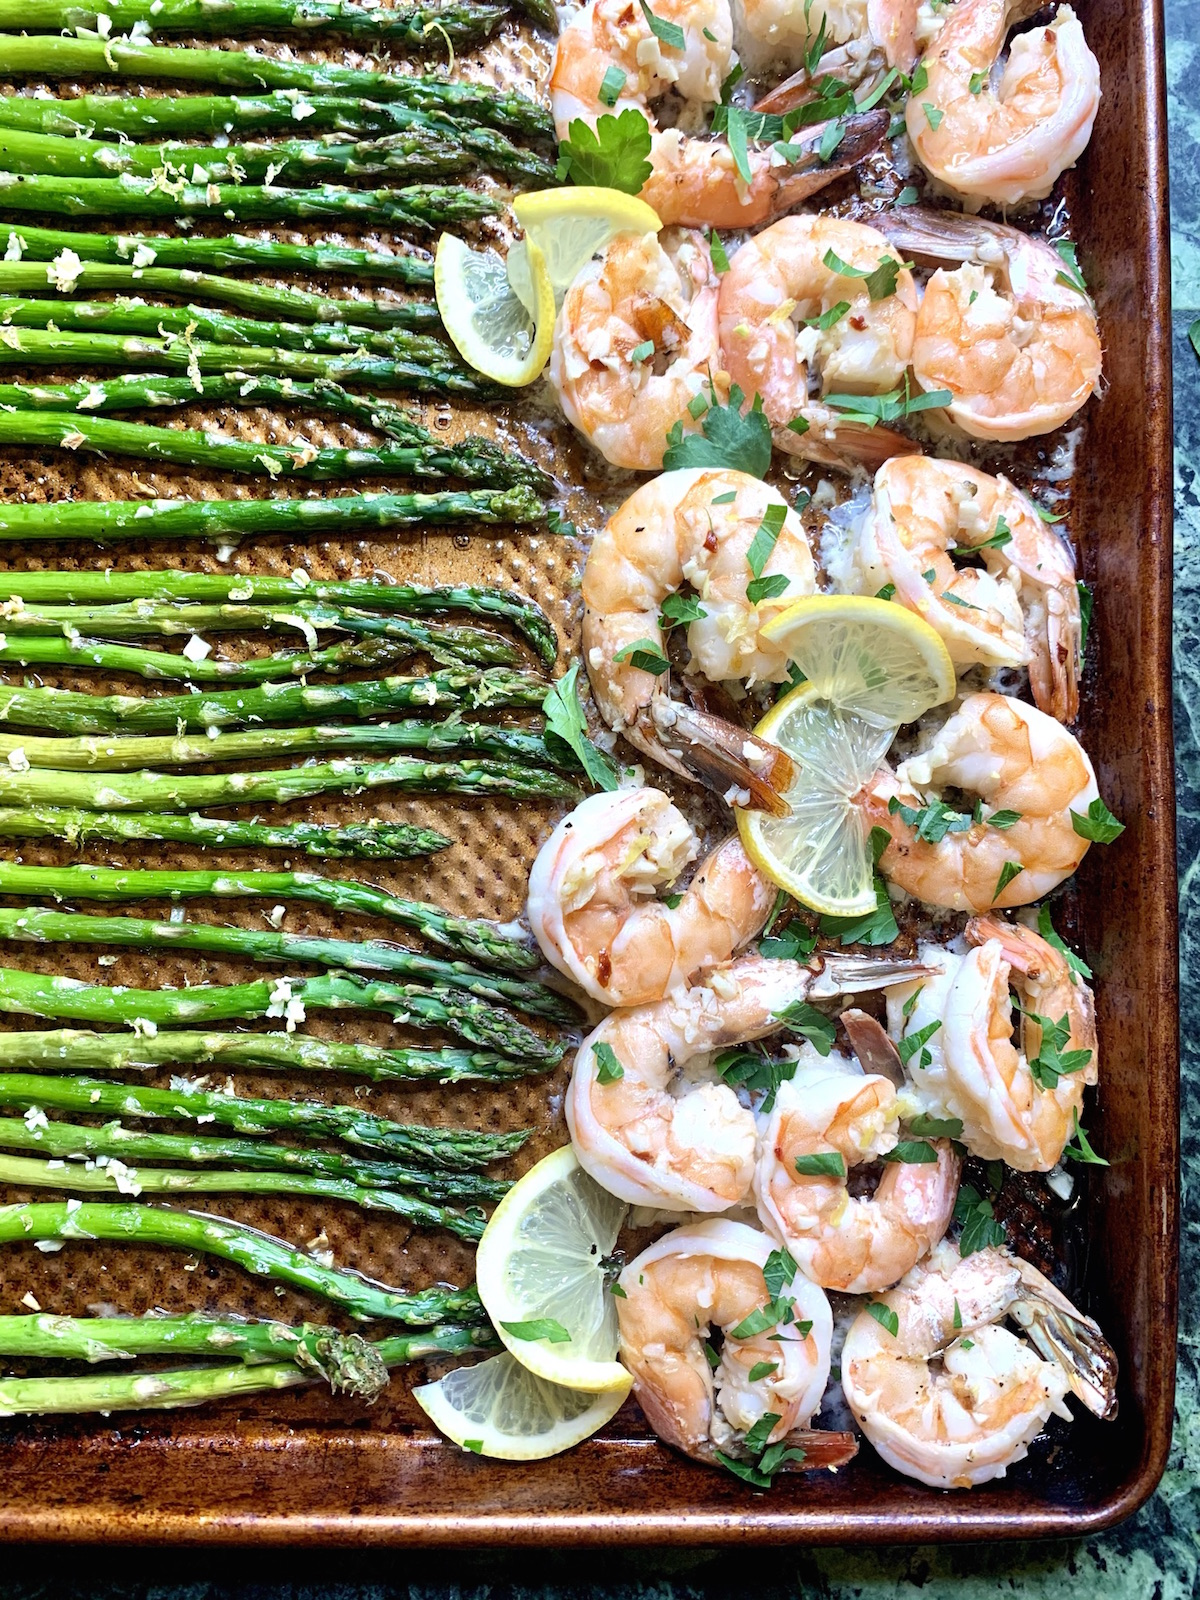 Partial sheet pan with cooked shrimp and asparagus in garlic lemon butter sauce